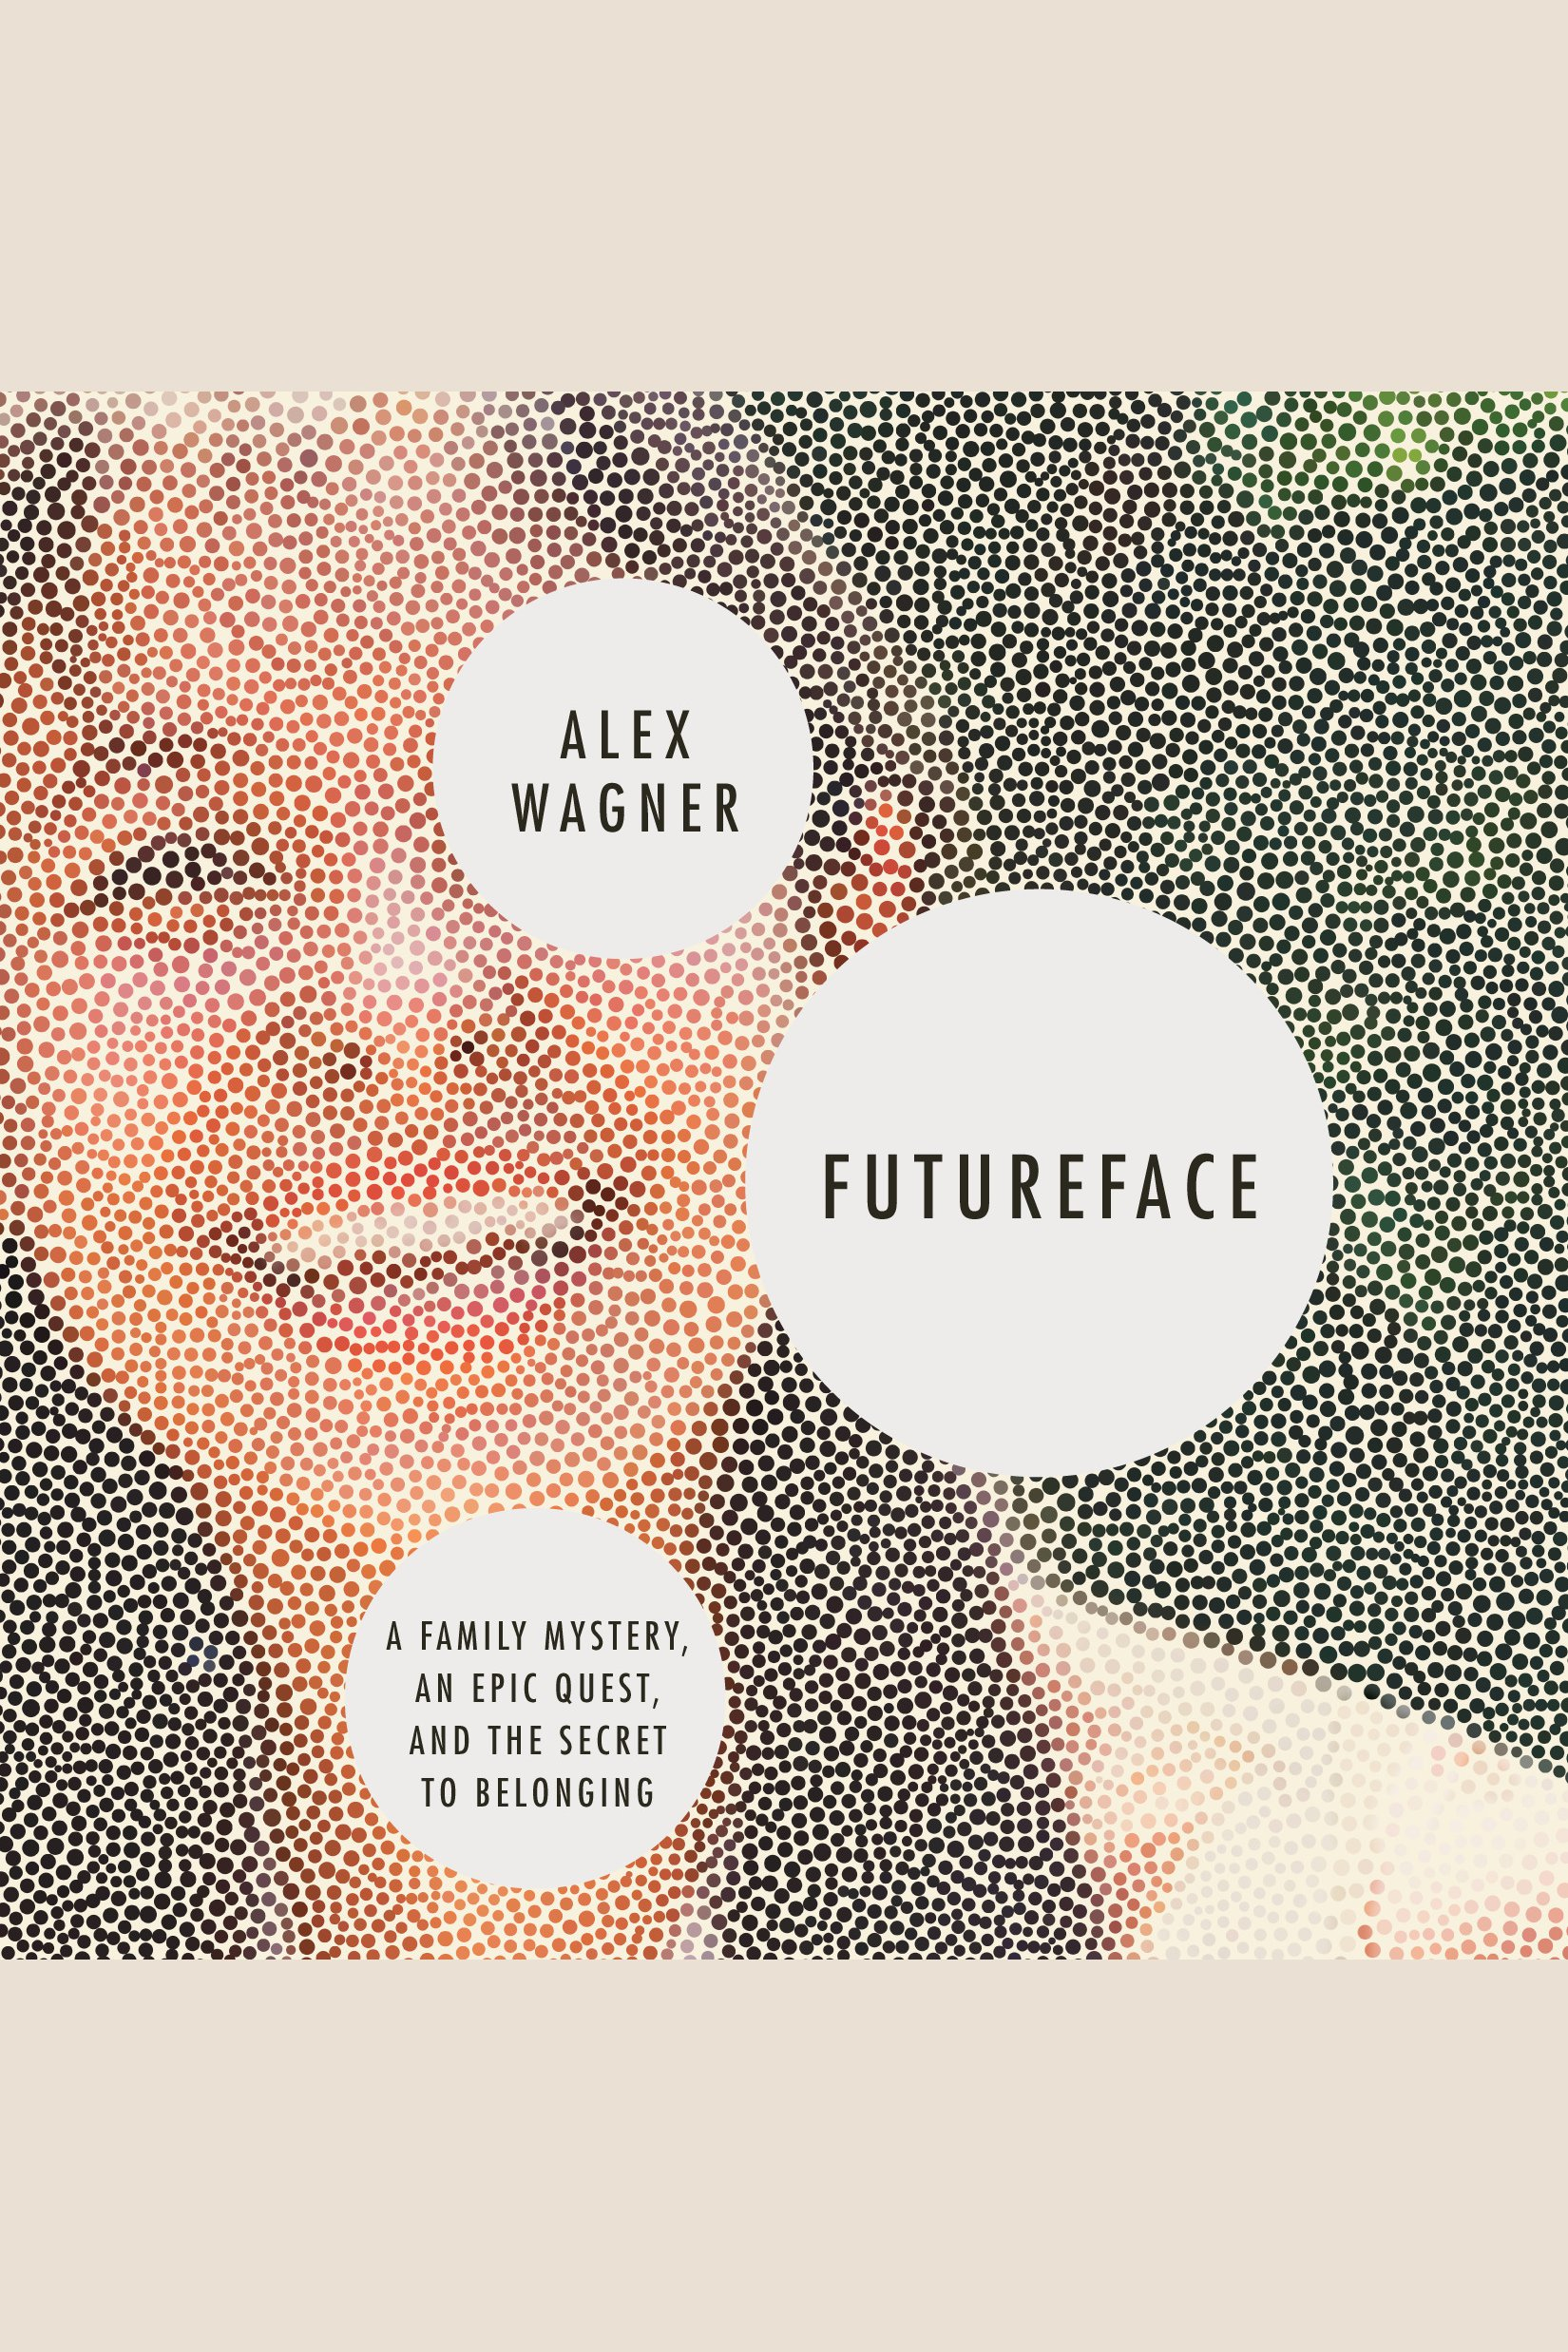 Futureface a family mystery, an epic quest, and the secret to belonging cover image